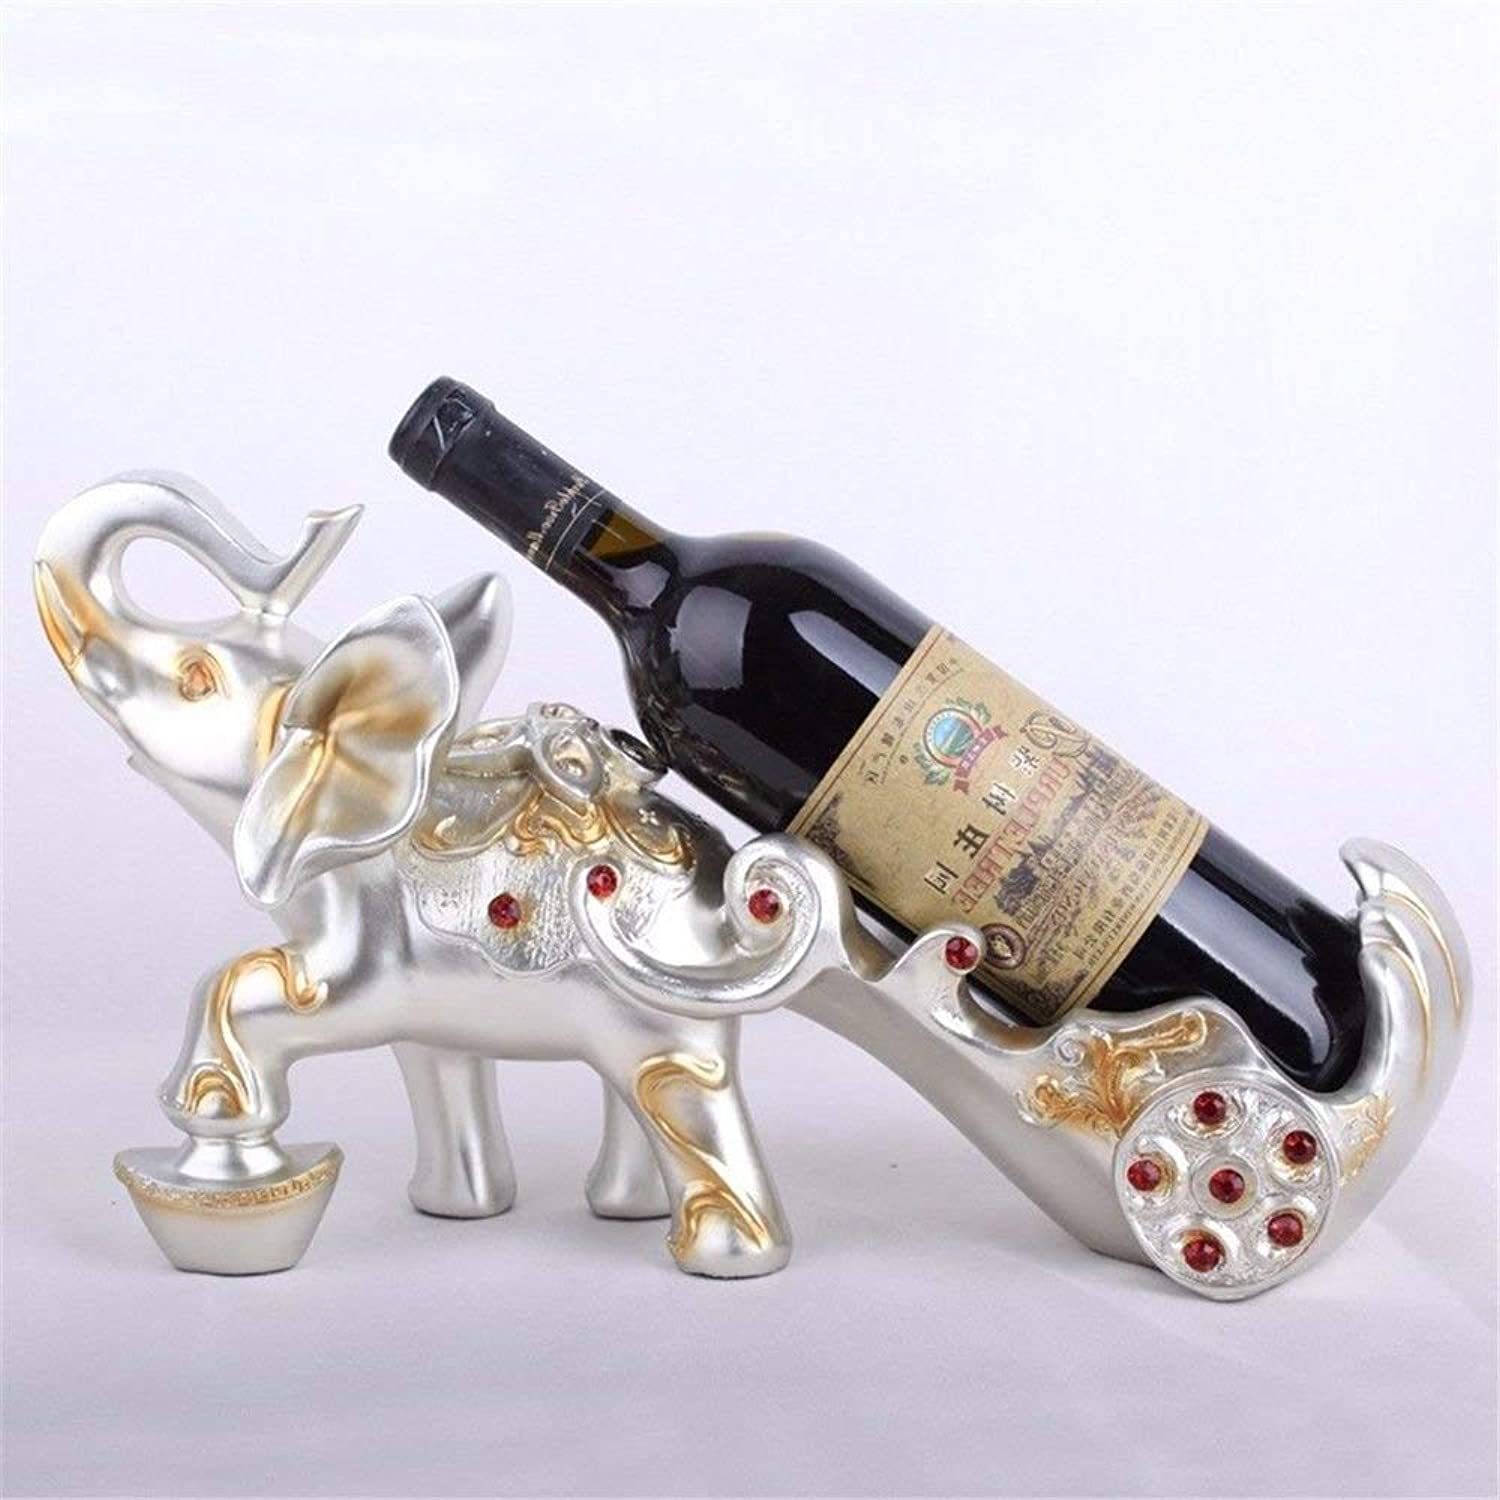 Red Wine Shelf This bottle rack is the perfect accessory for storing bottles - Stackable bottle holder ideal for bottles of vingolden elephant elephant cart, wine, gifts, furnishing decoration, silver